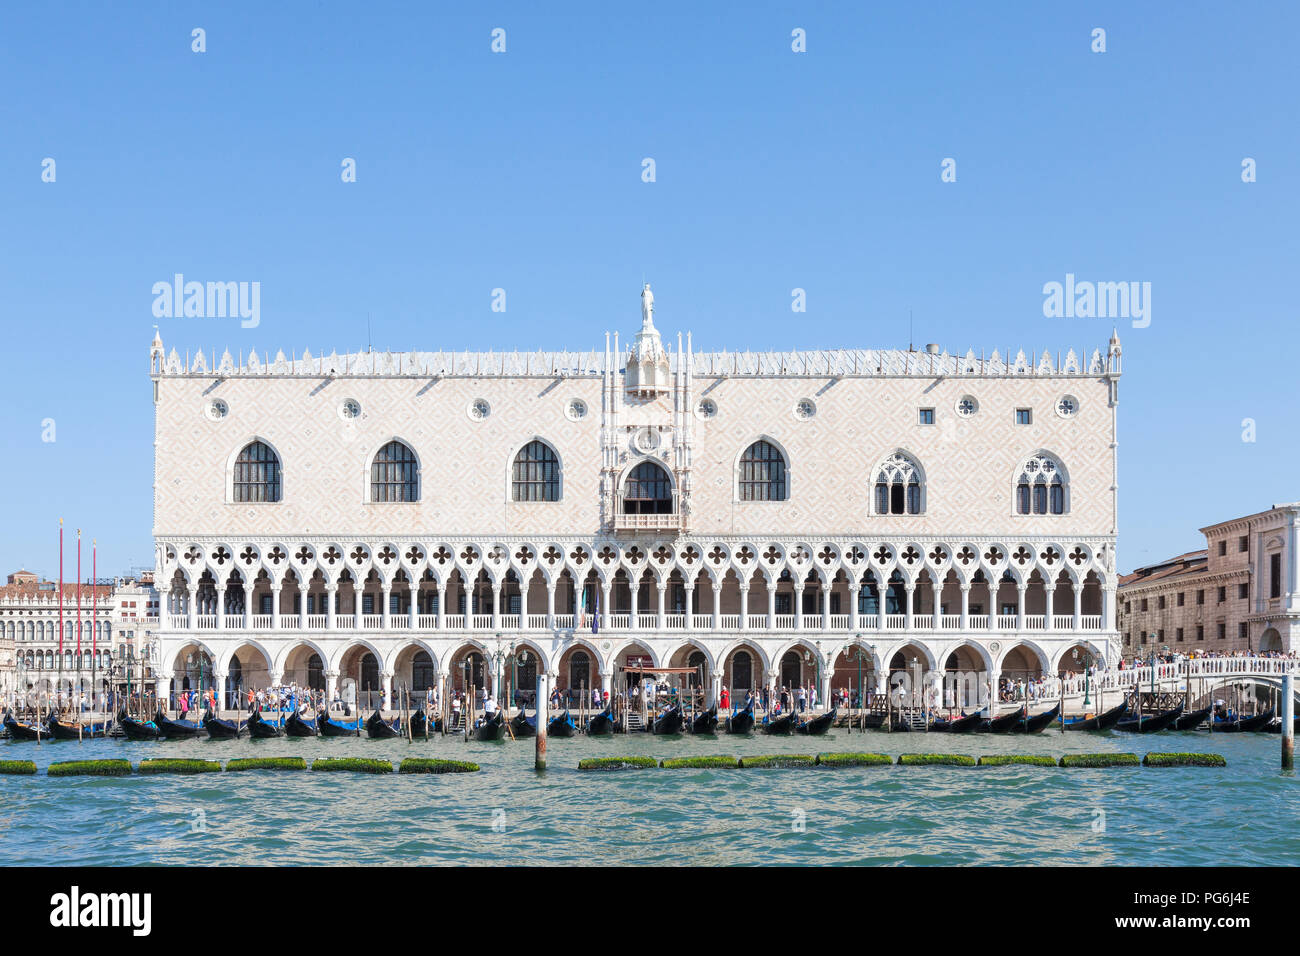 Doges Palace, Palazzo Ducale, Ducal Palace, San Marco, Venice, Veneto, Italy in morning light from the lagoon with gondolas and tourists, blue sunny s - Stock Image